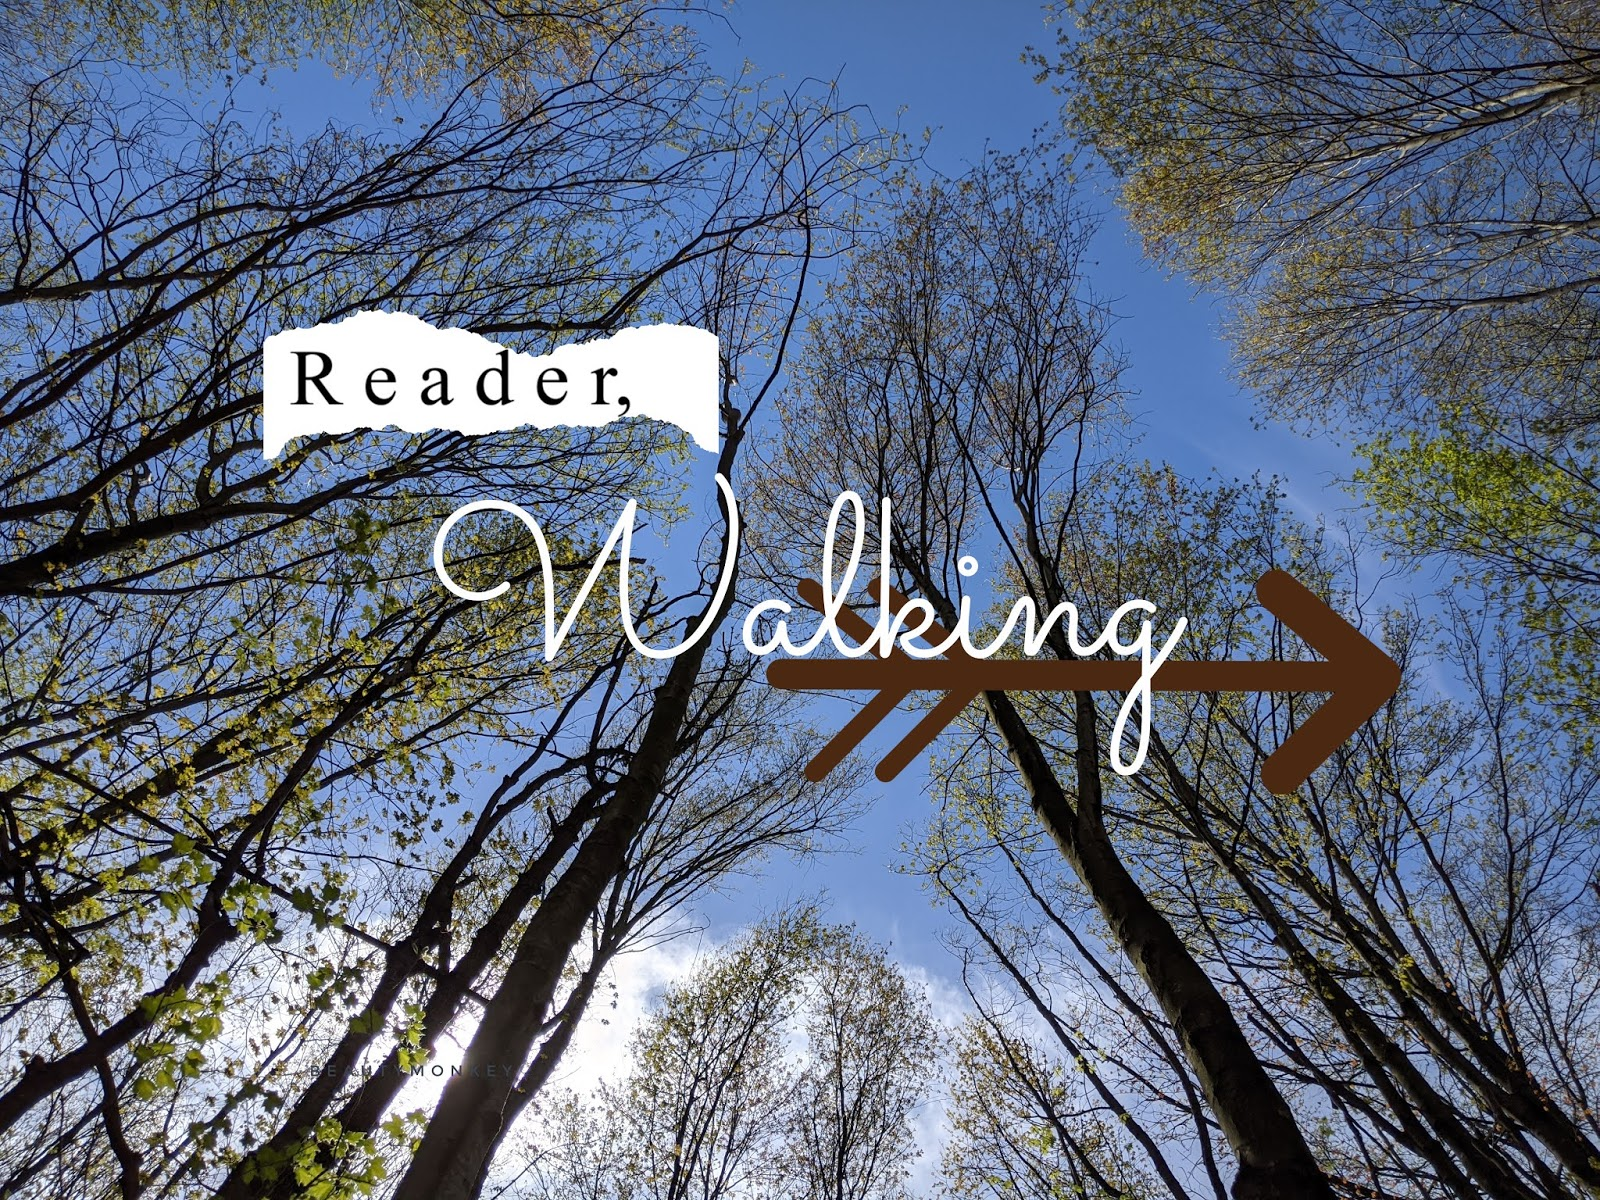 Reader, Walking